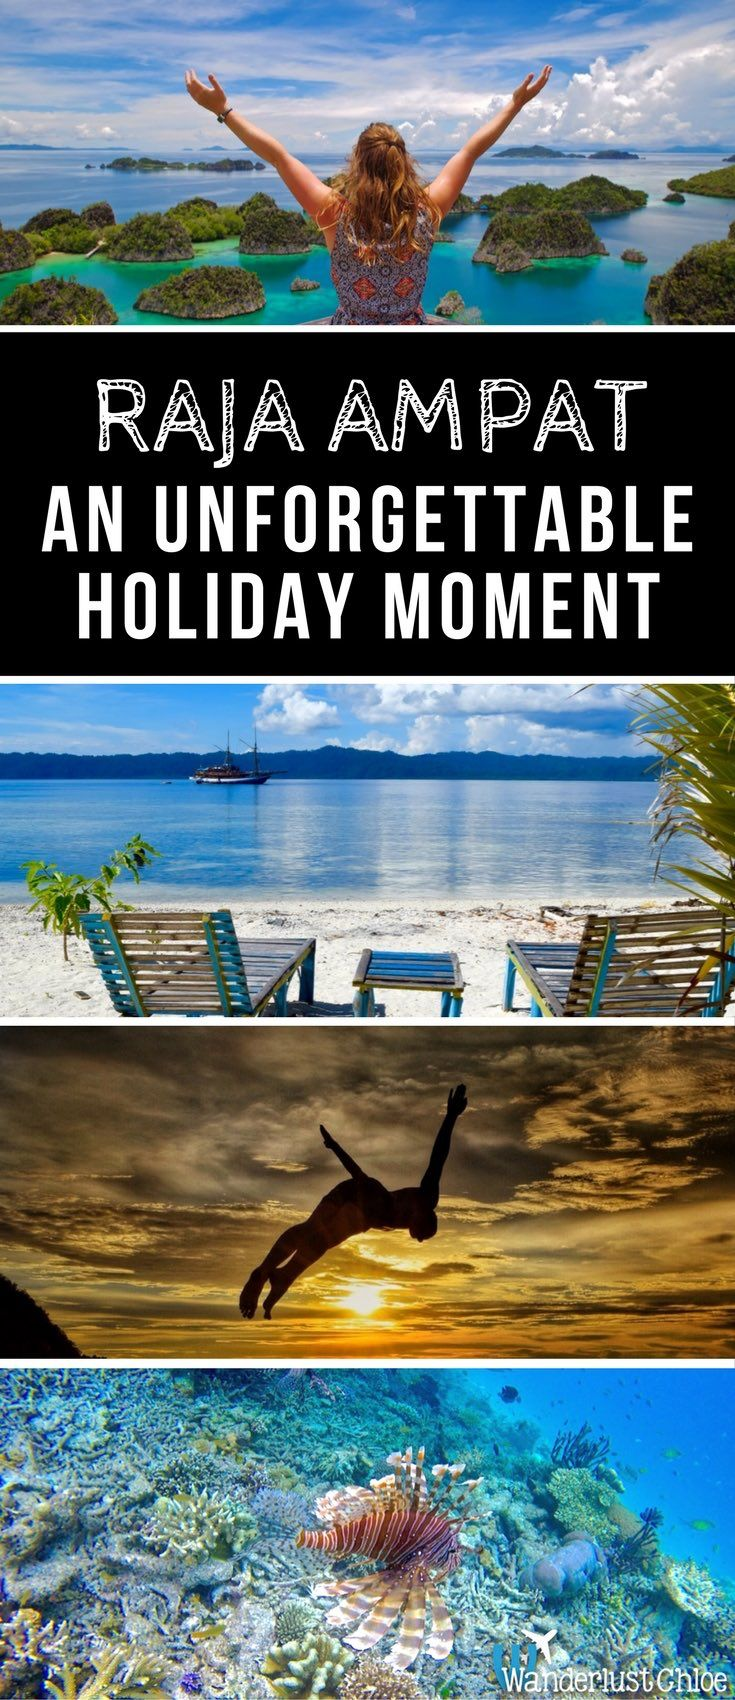 Raja Ampat, Indonesia - An Unforgettable Holiday Moment. If you had to pick one special moment from your holidays, what would you pick and why? When I was asked this question recently, one place instantly popped into my mind. https://www.wanderlustchloe.com/raja-ampat-indonesia-holiday/